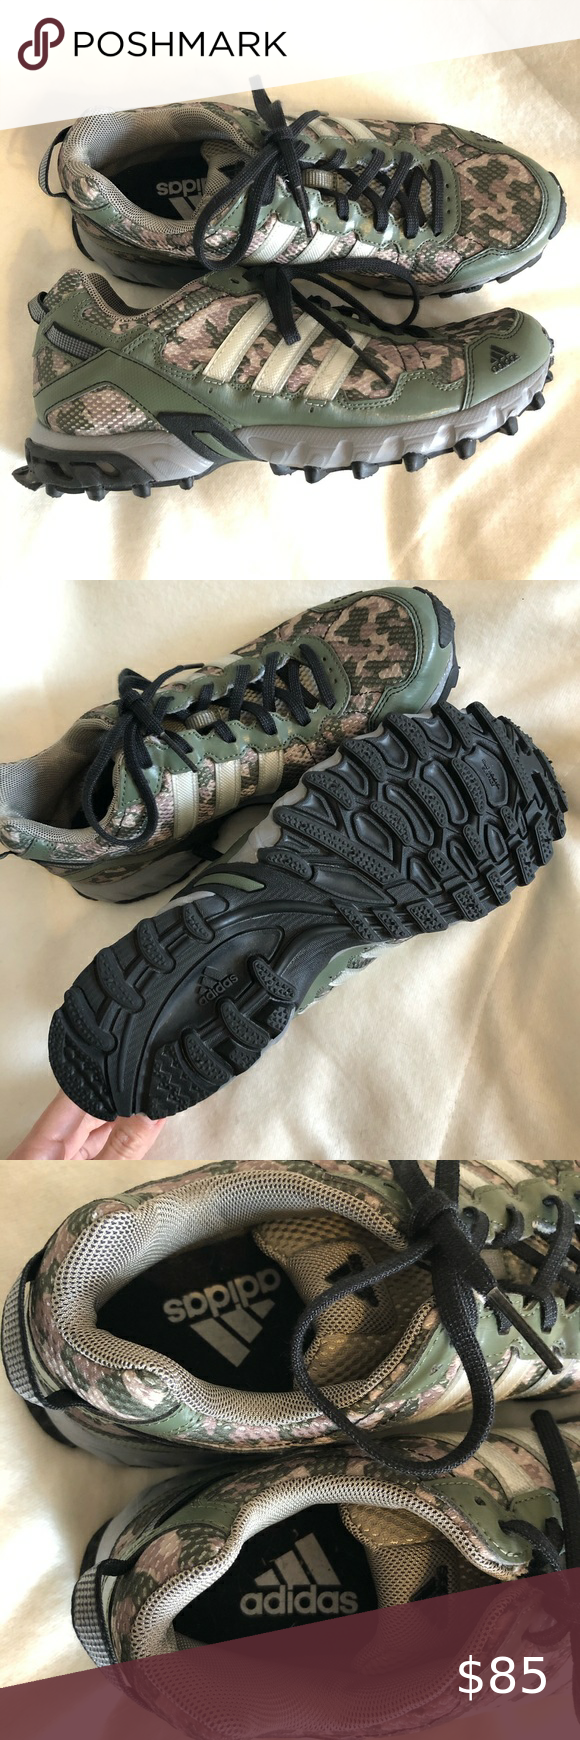 ADIDAS CAMO SNEAKERS MUD RELEASE